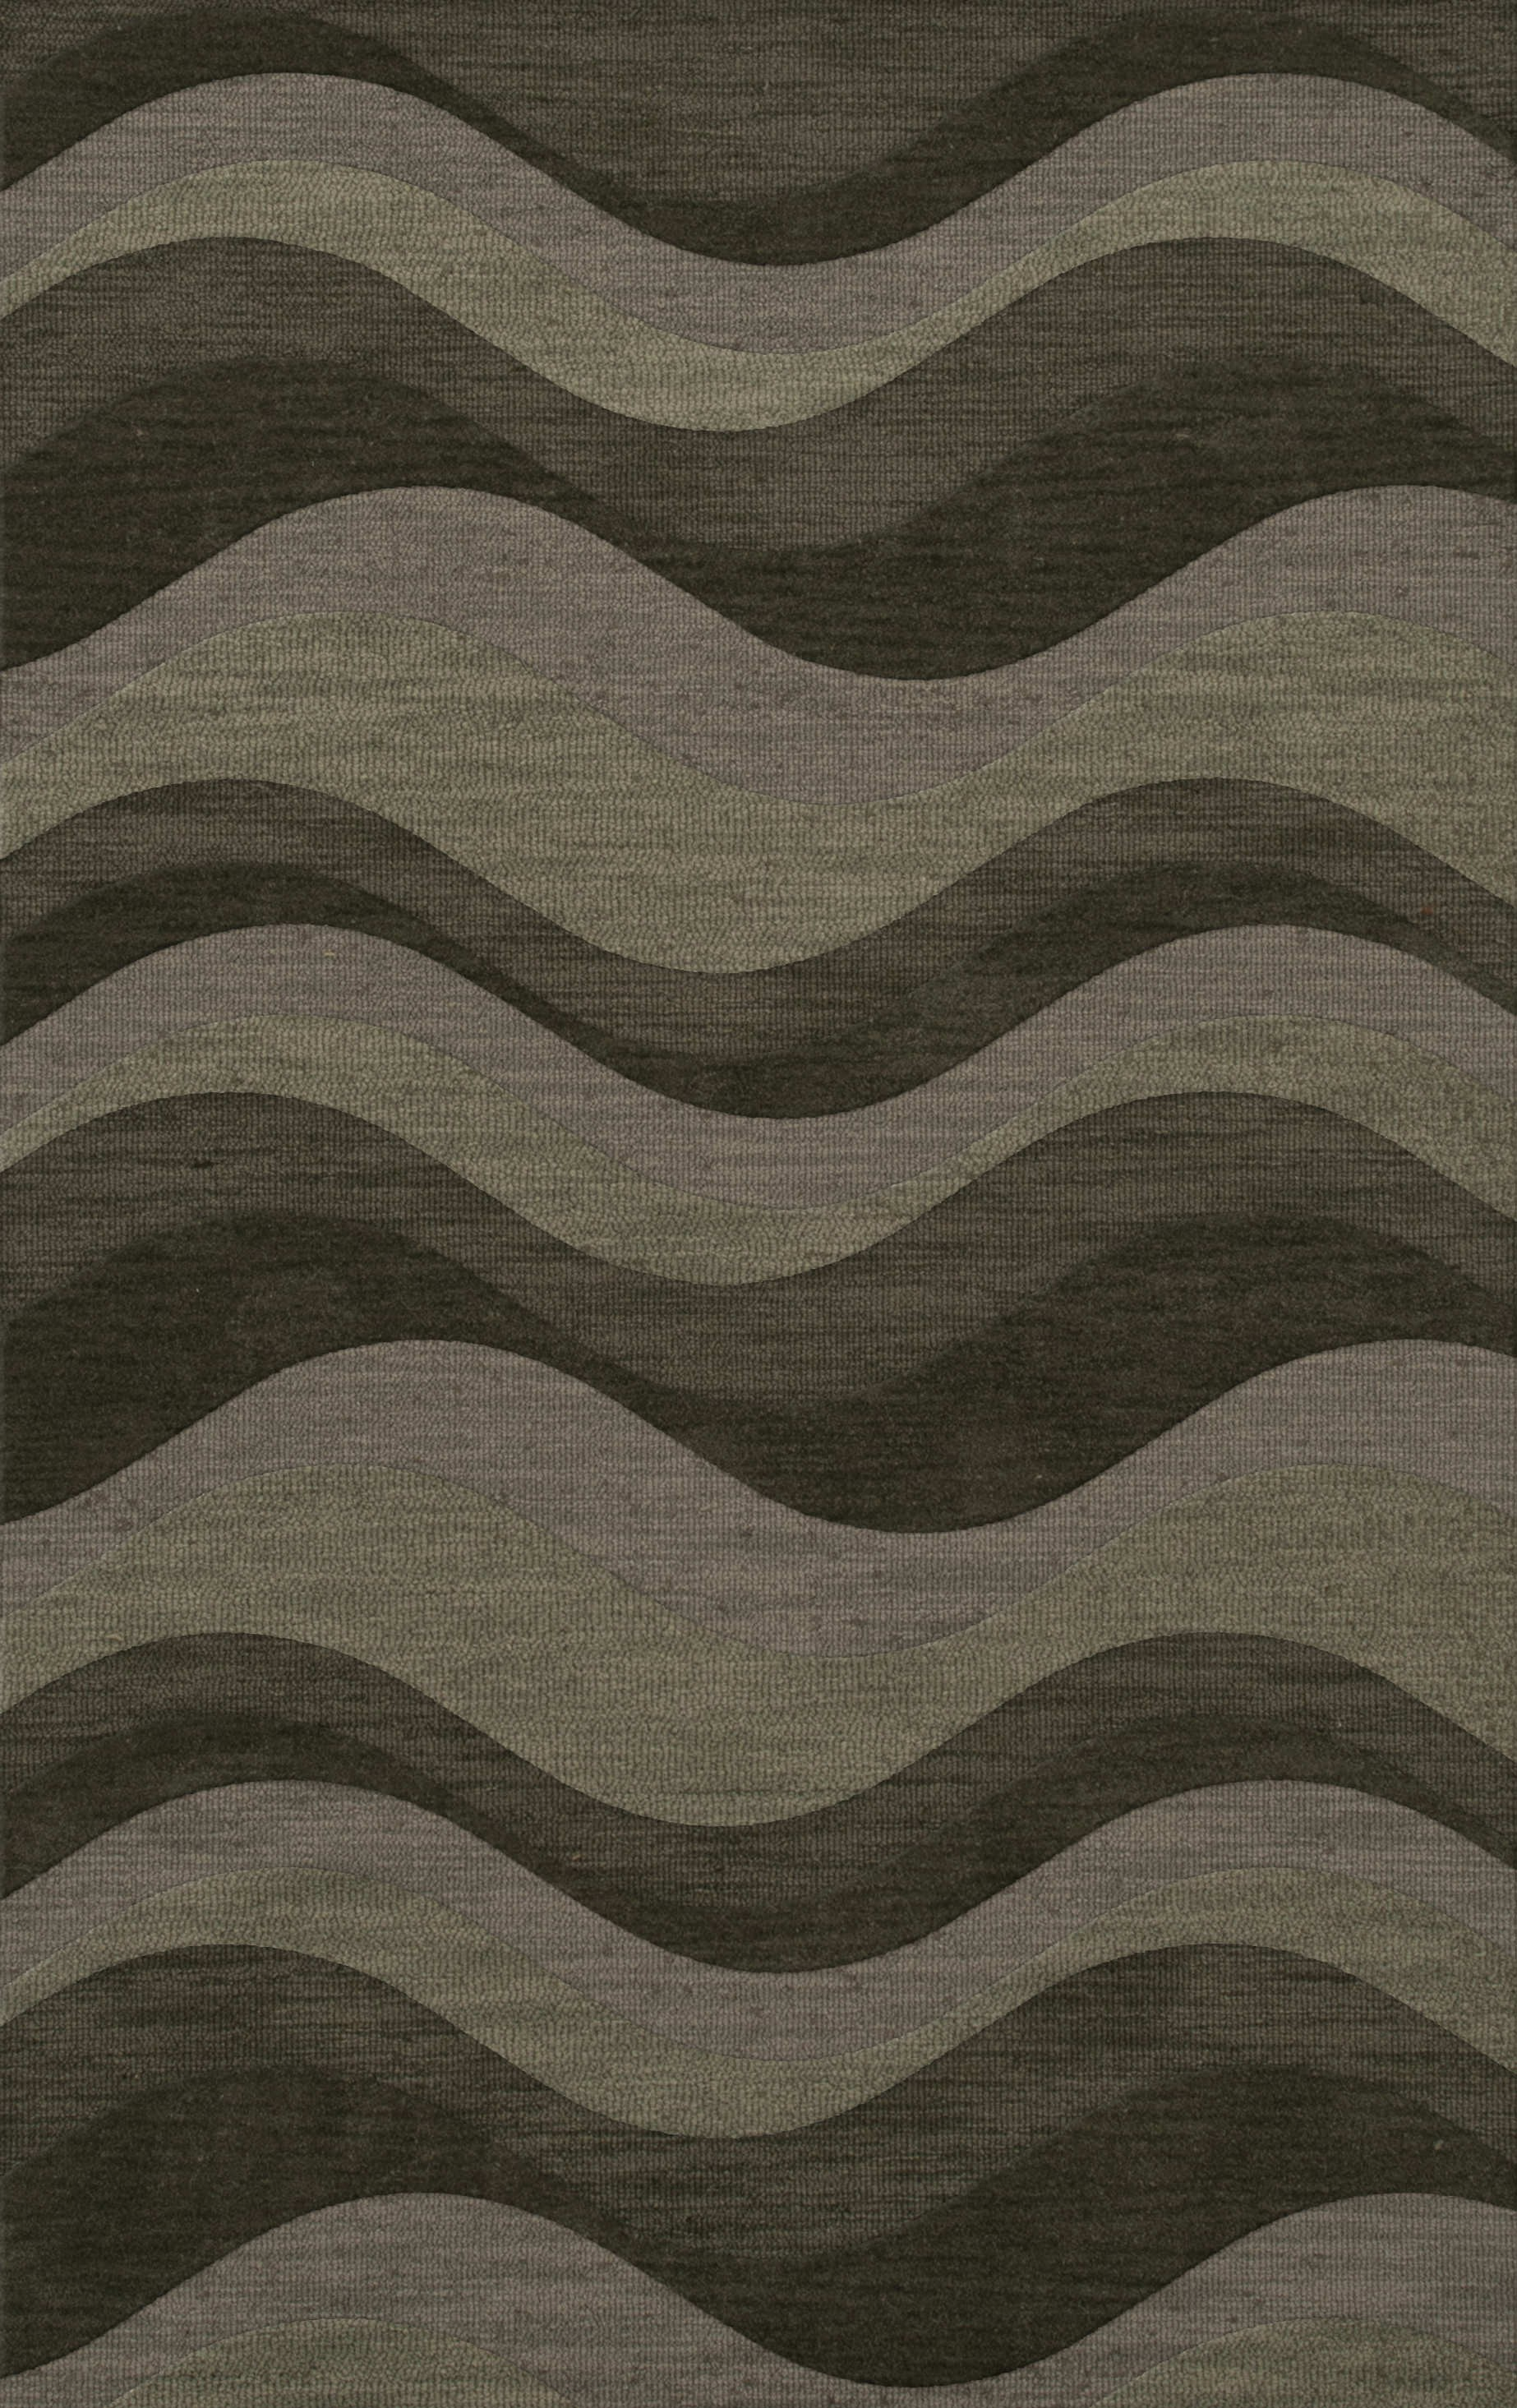 Awesome rectangle Dalyn Rugs with waves and multicolor design for floor decor ideas